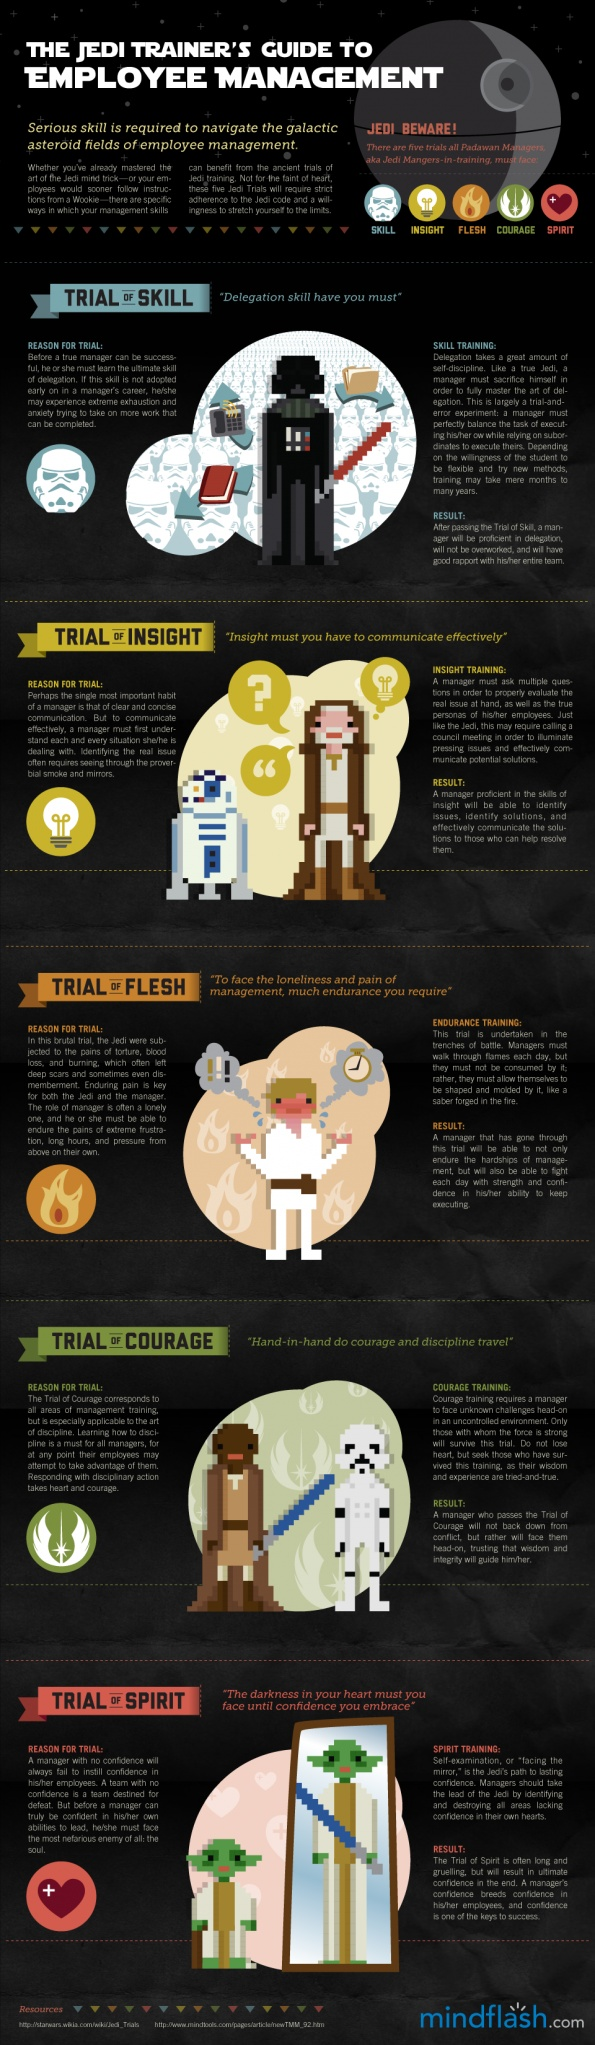 The Jedi Trainers Guide To #Employee Management #infographic #management